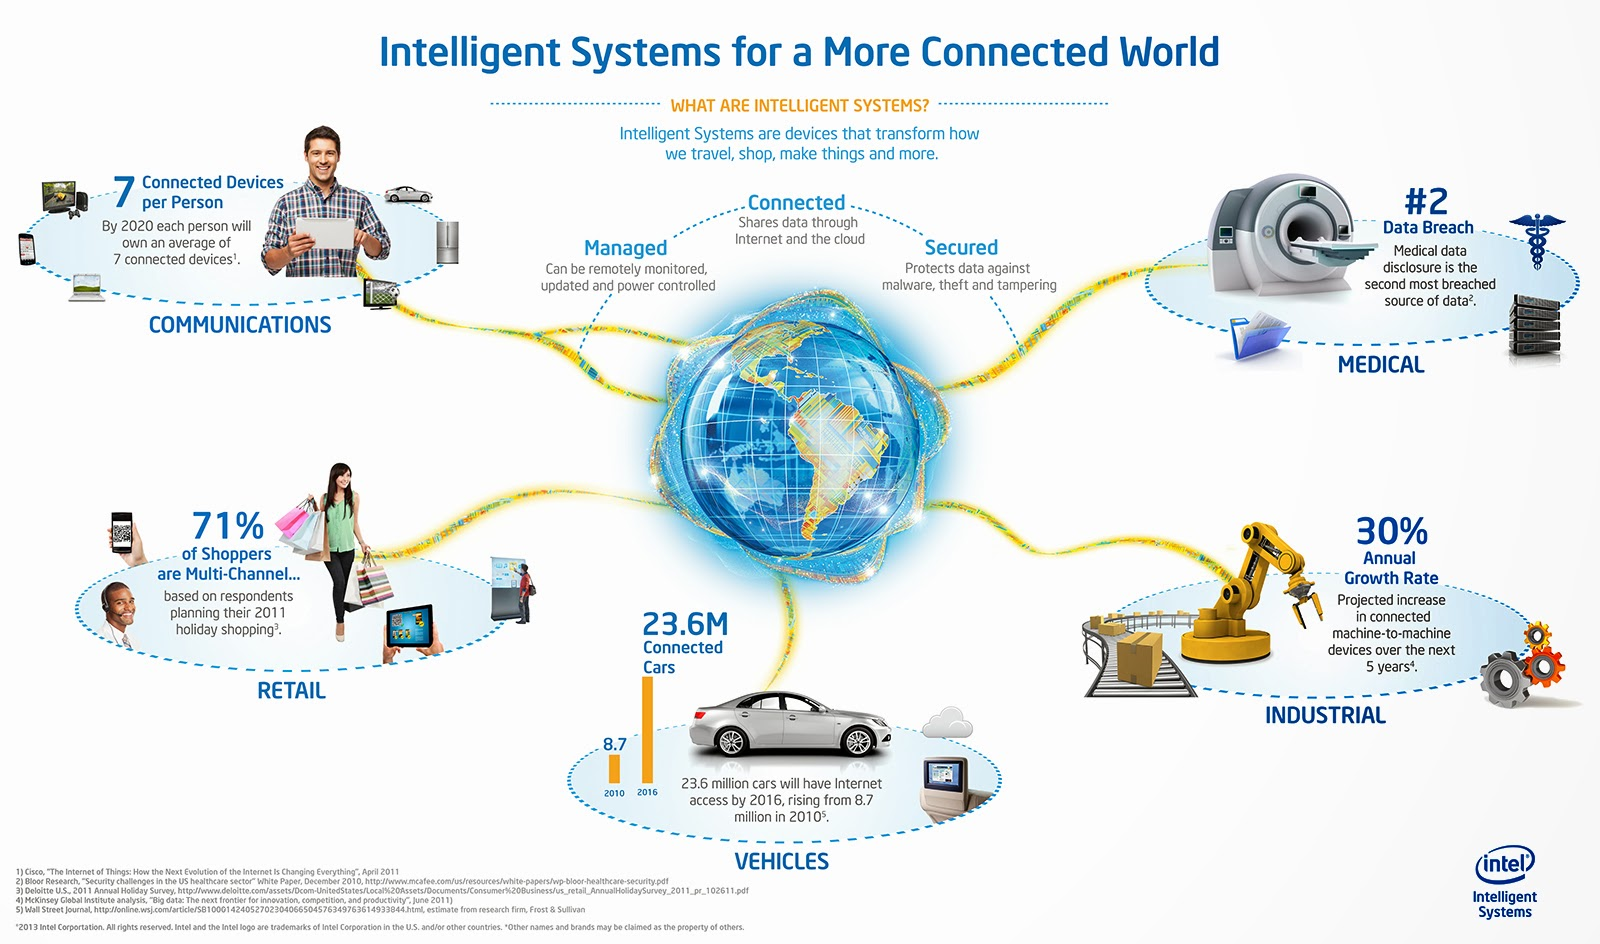 iot and m2m communication industry market [271 pages report] internet of things (iot) and machine-to-machine (m2m) communications market report segmented the global market by technology & platforms, iot components, m2m connections & modules, verticals, and geography.